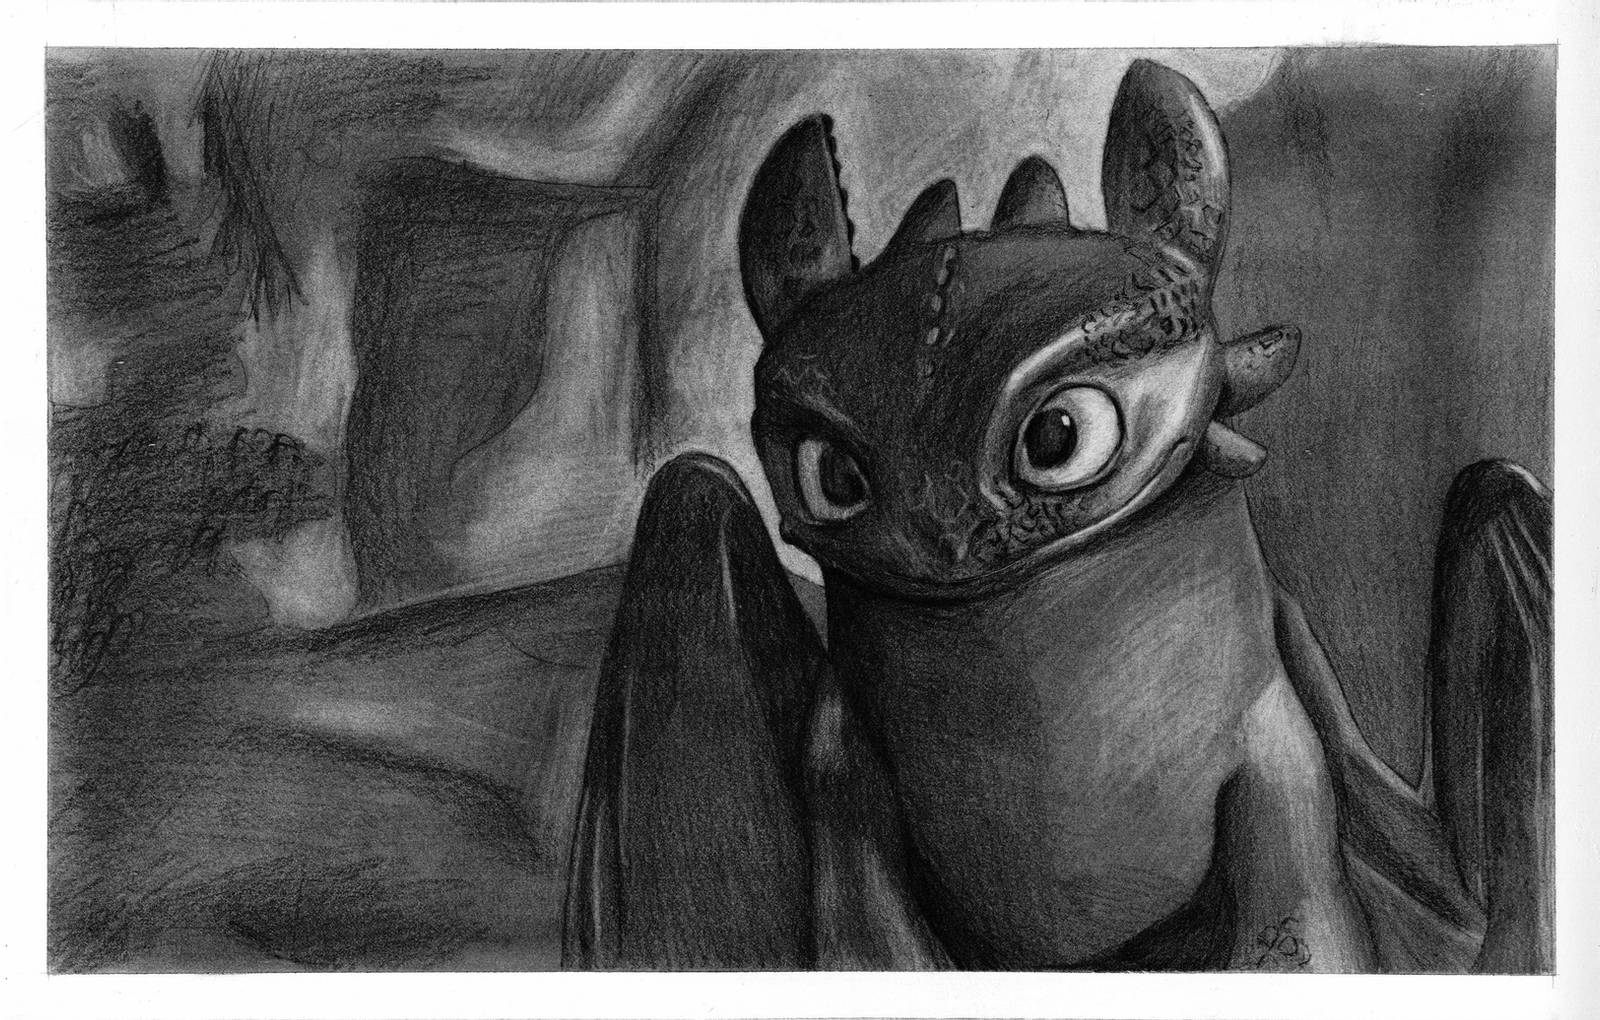 drawings of toothless dragons toothless pencil drawing by elsuri on deviantart drawings toothless of